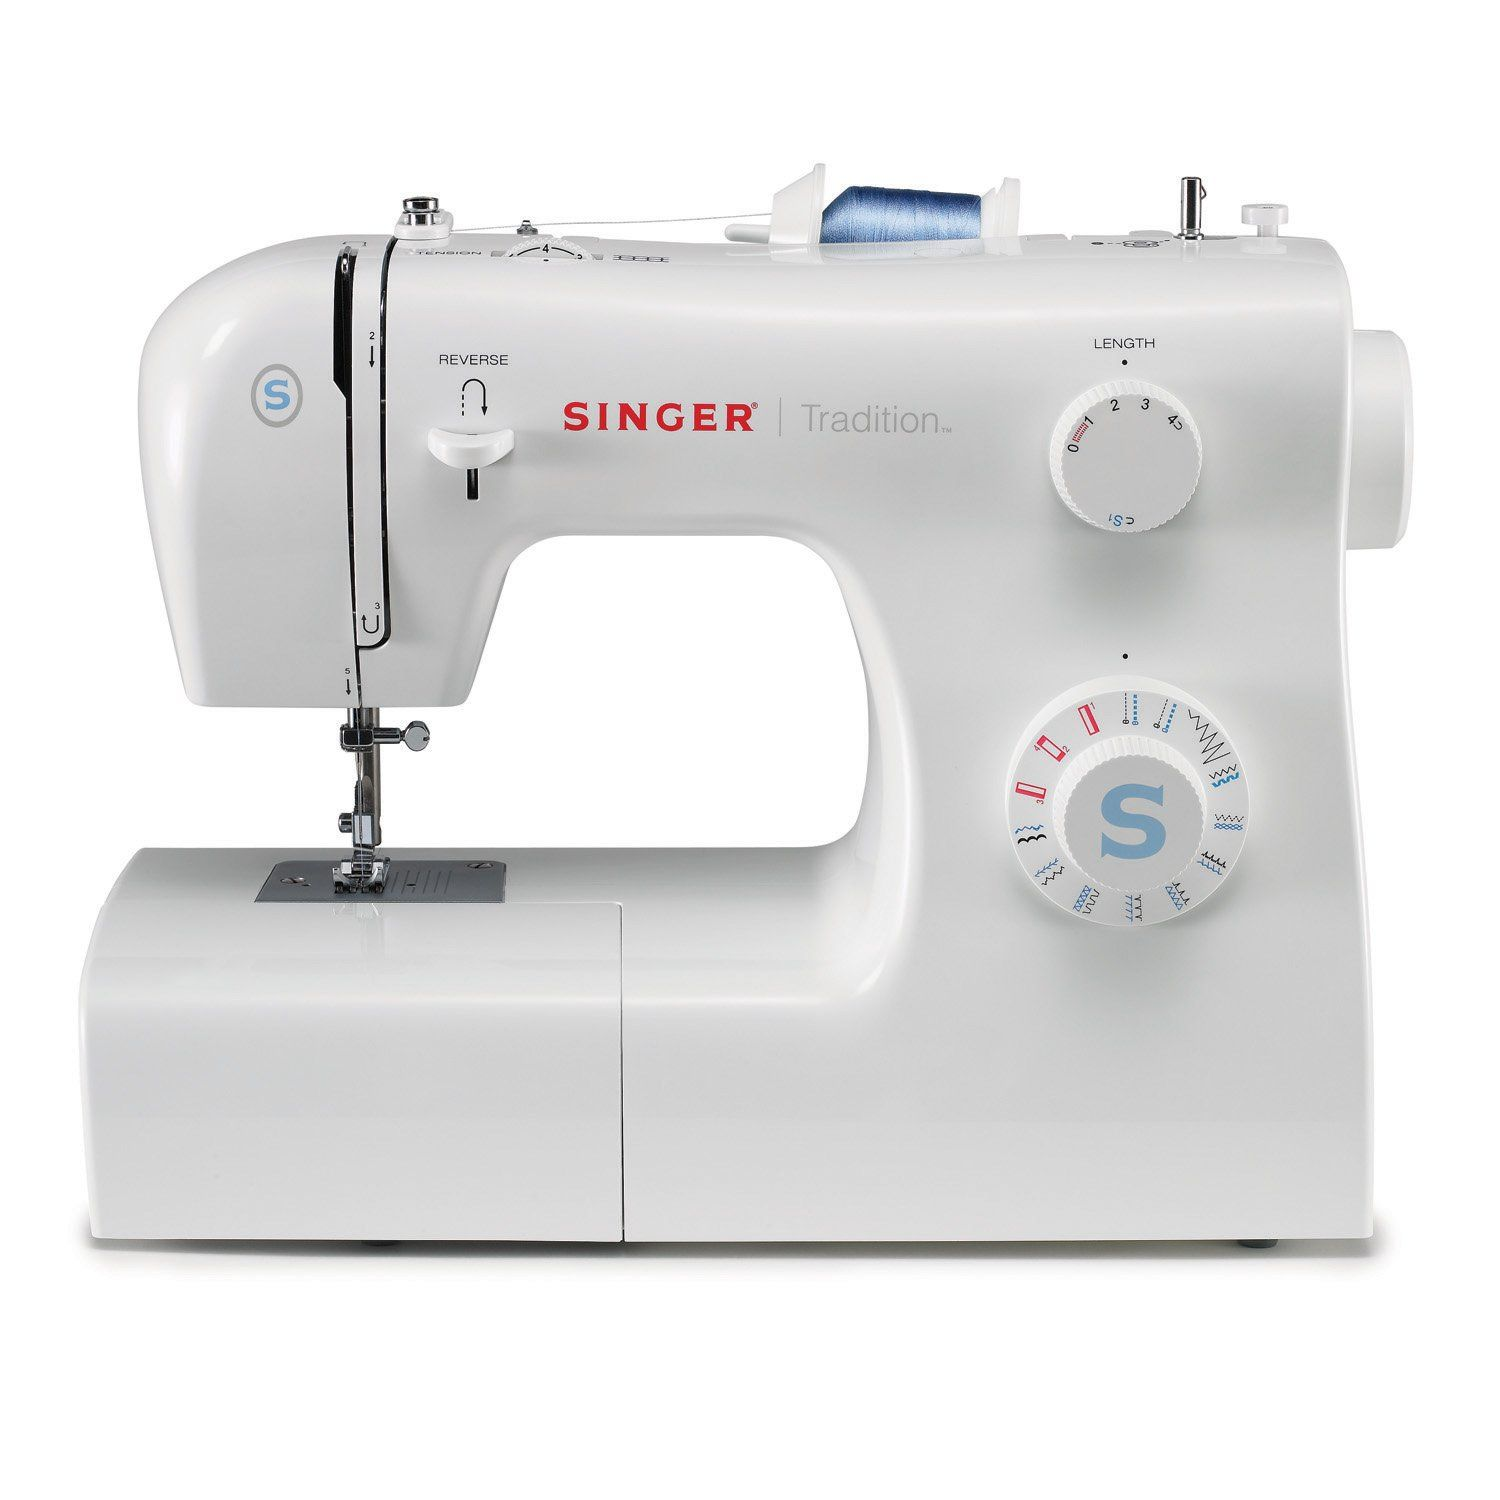 Perfect for Beginners Electric Portable Sewing Machines UKICRA Sewing Machine UFR-505 12 Stitches